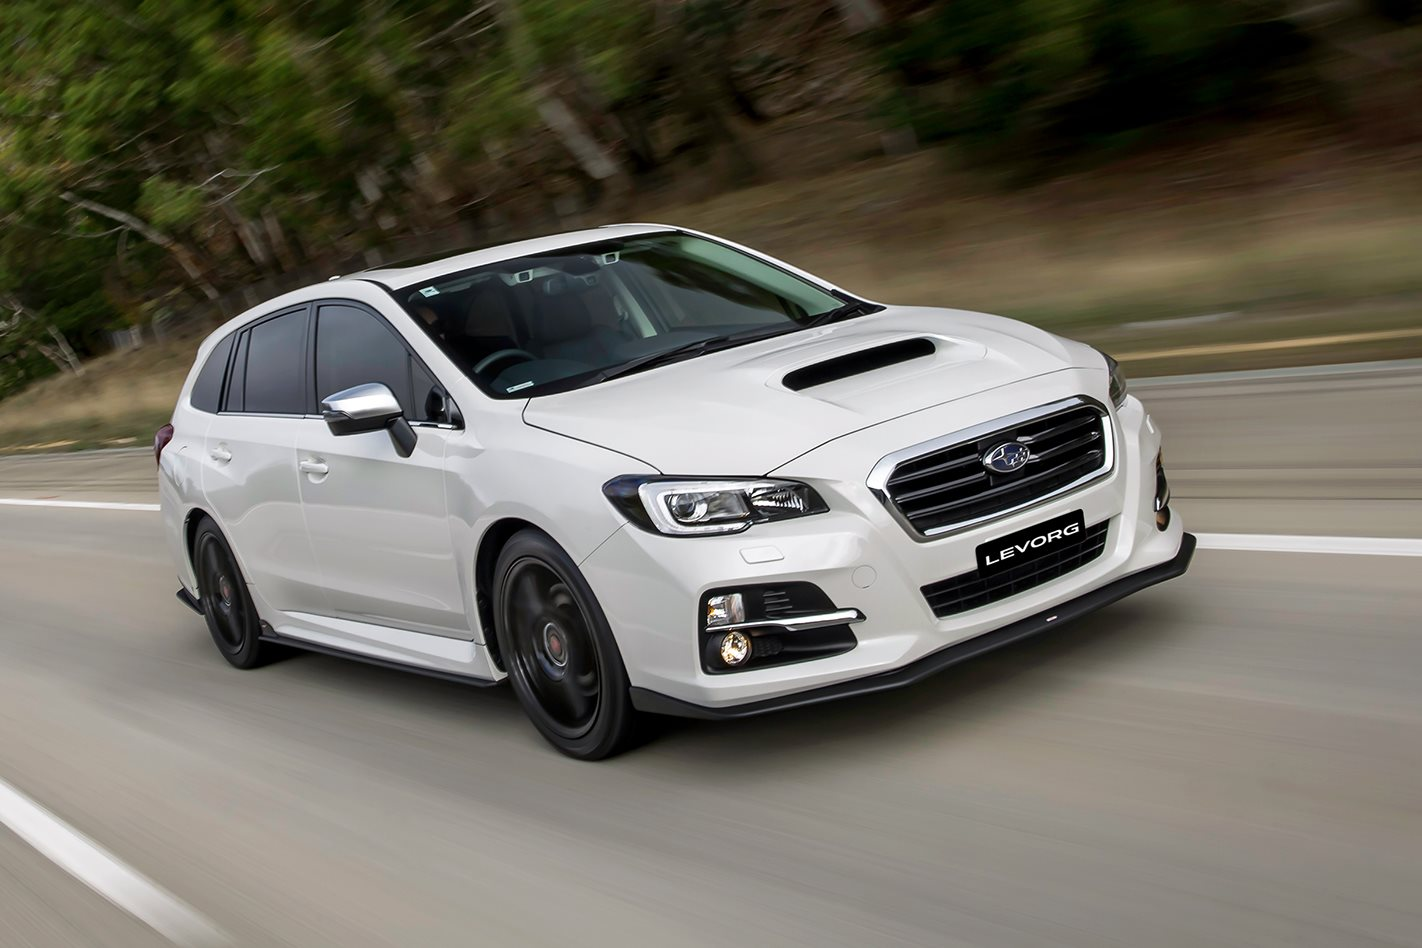 Subaru Levorg Review, Price & Features